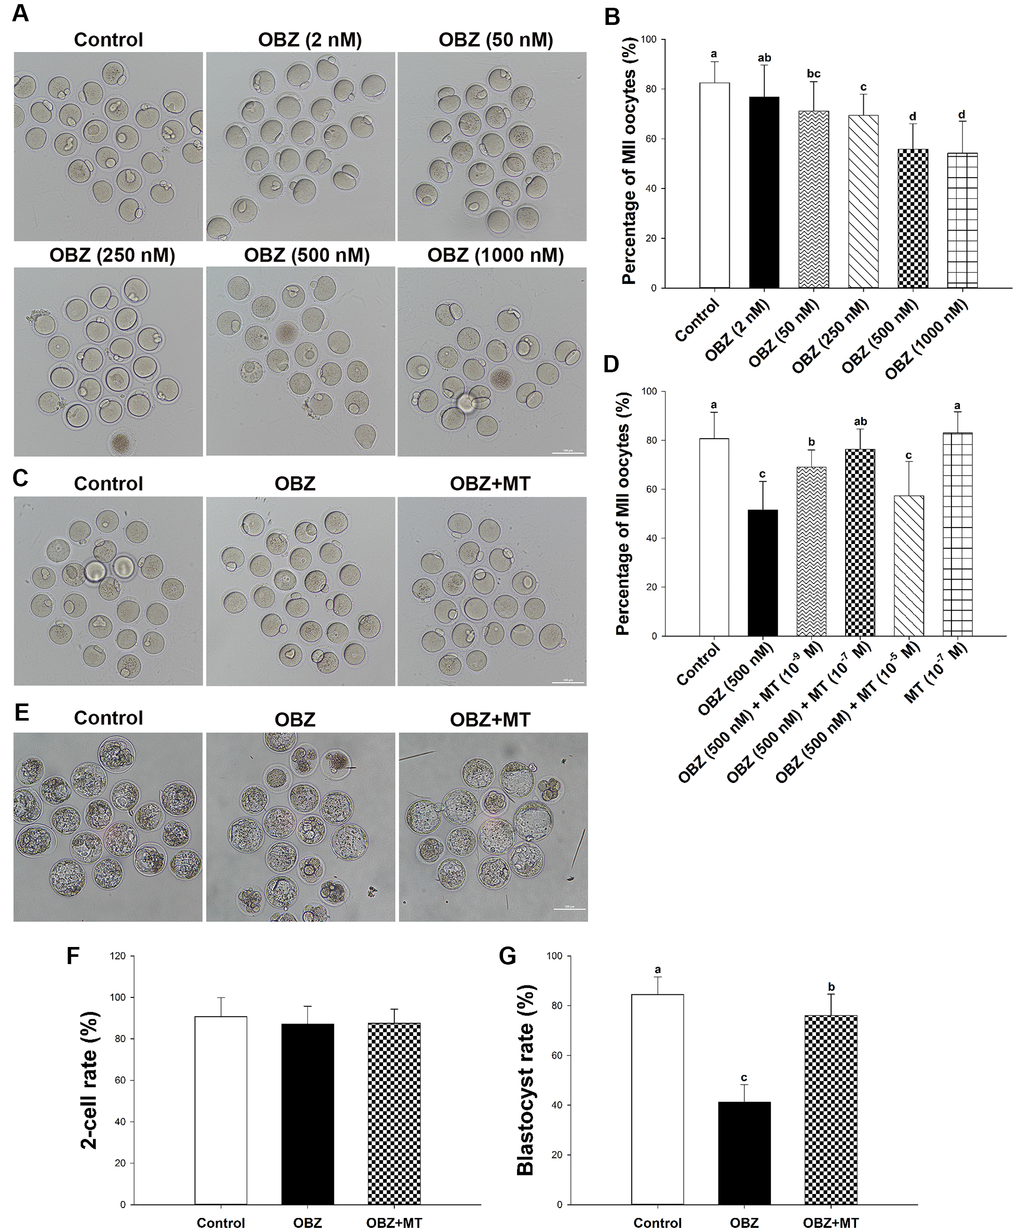 Effects of melatonin on mouse oocytes and embryos following OBZ exposure in vitro. (A) Representative images of oocytes that extruded the first polar body (PB1) in the control and OBZ-exposed groups. Scale bar, 100 μm. (B) Polar body extrusion (PBE) rate in different treatment groups. (C) The mouse oocyte morphologies in the control, OBZ, and OBZ+MT groups. Scale bar, 100 μm. (D) The effects of gradient concentrations of melatonin on the rate of PBE in OBZ-exposed oocytes. (E-G) Mouse embryo morphologies (E) and embryo development rate (F, G) from the 2-cell to blastocyst stages in the control, OBZ, and OBZ+MT groups. Values indicated by different letters are significantly different (P